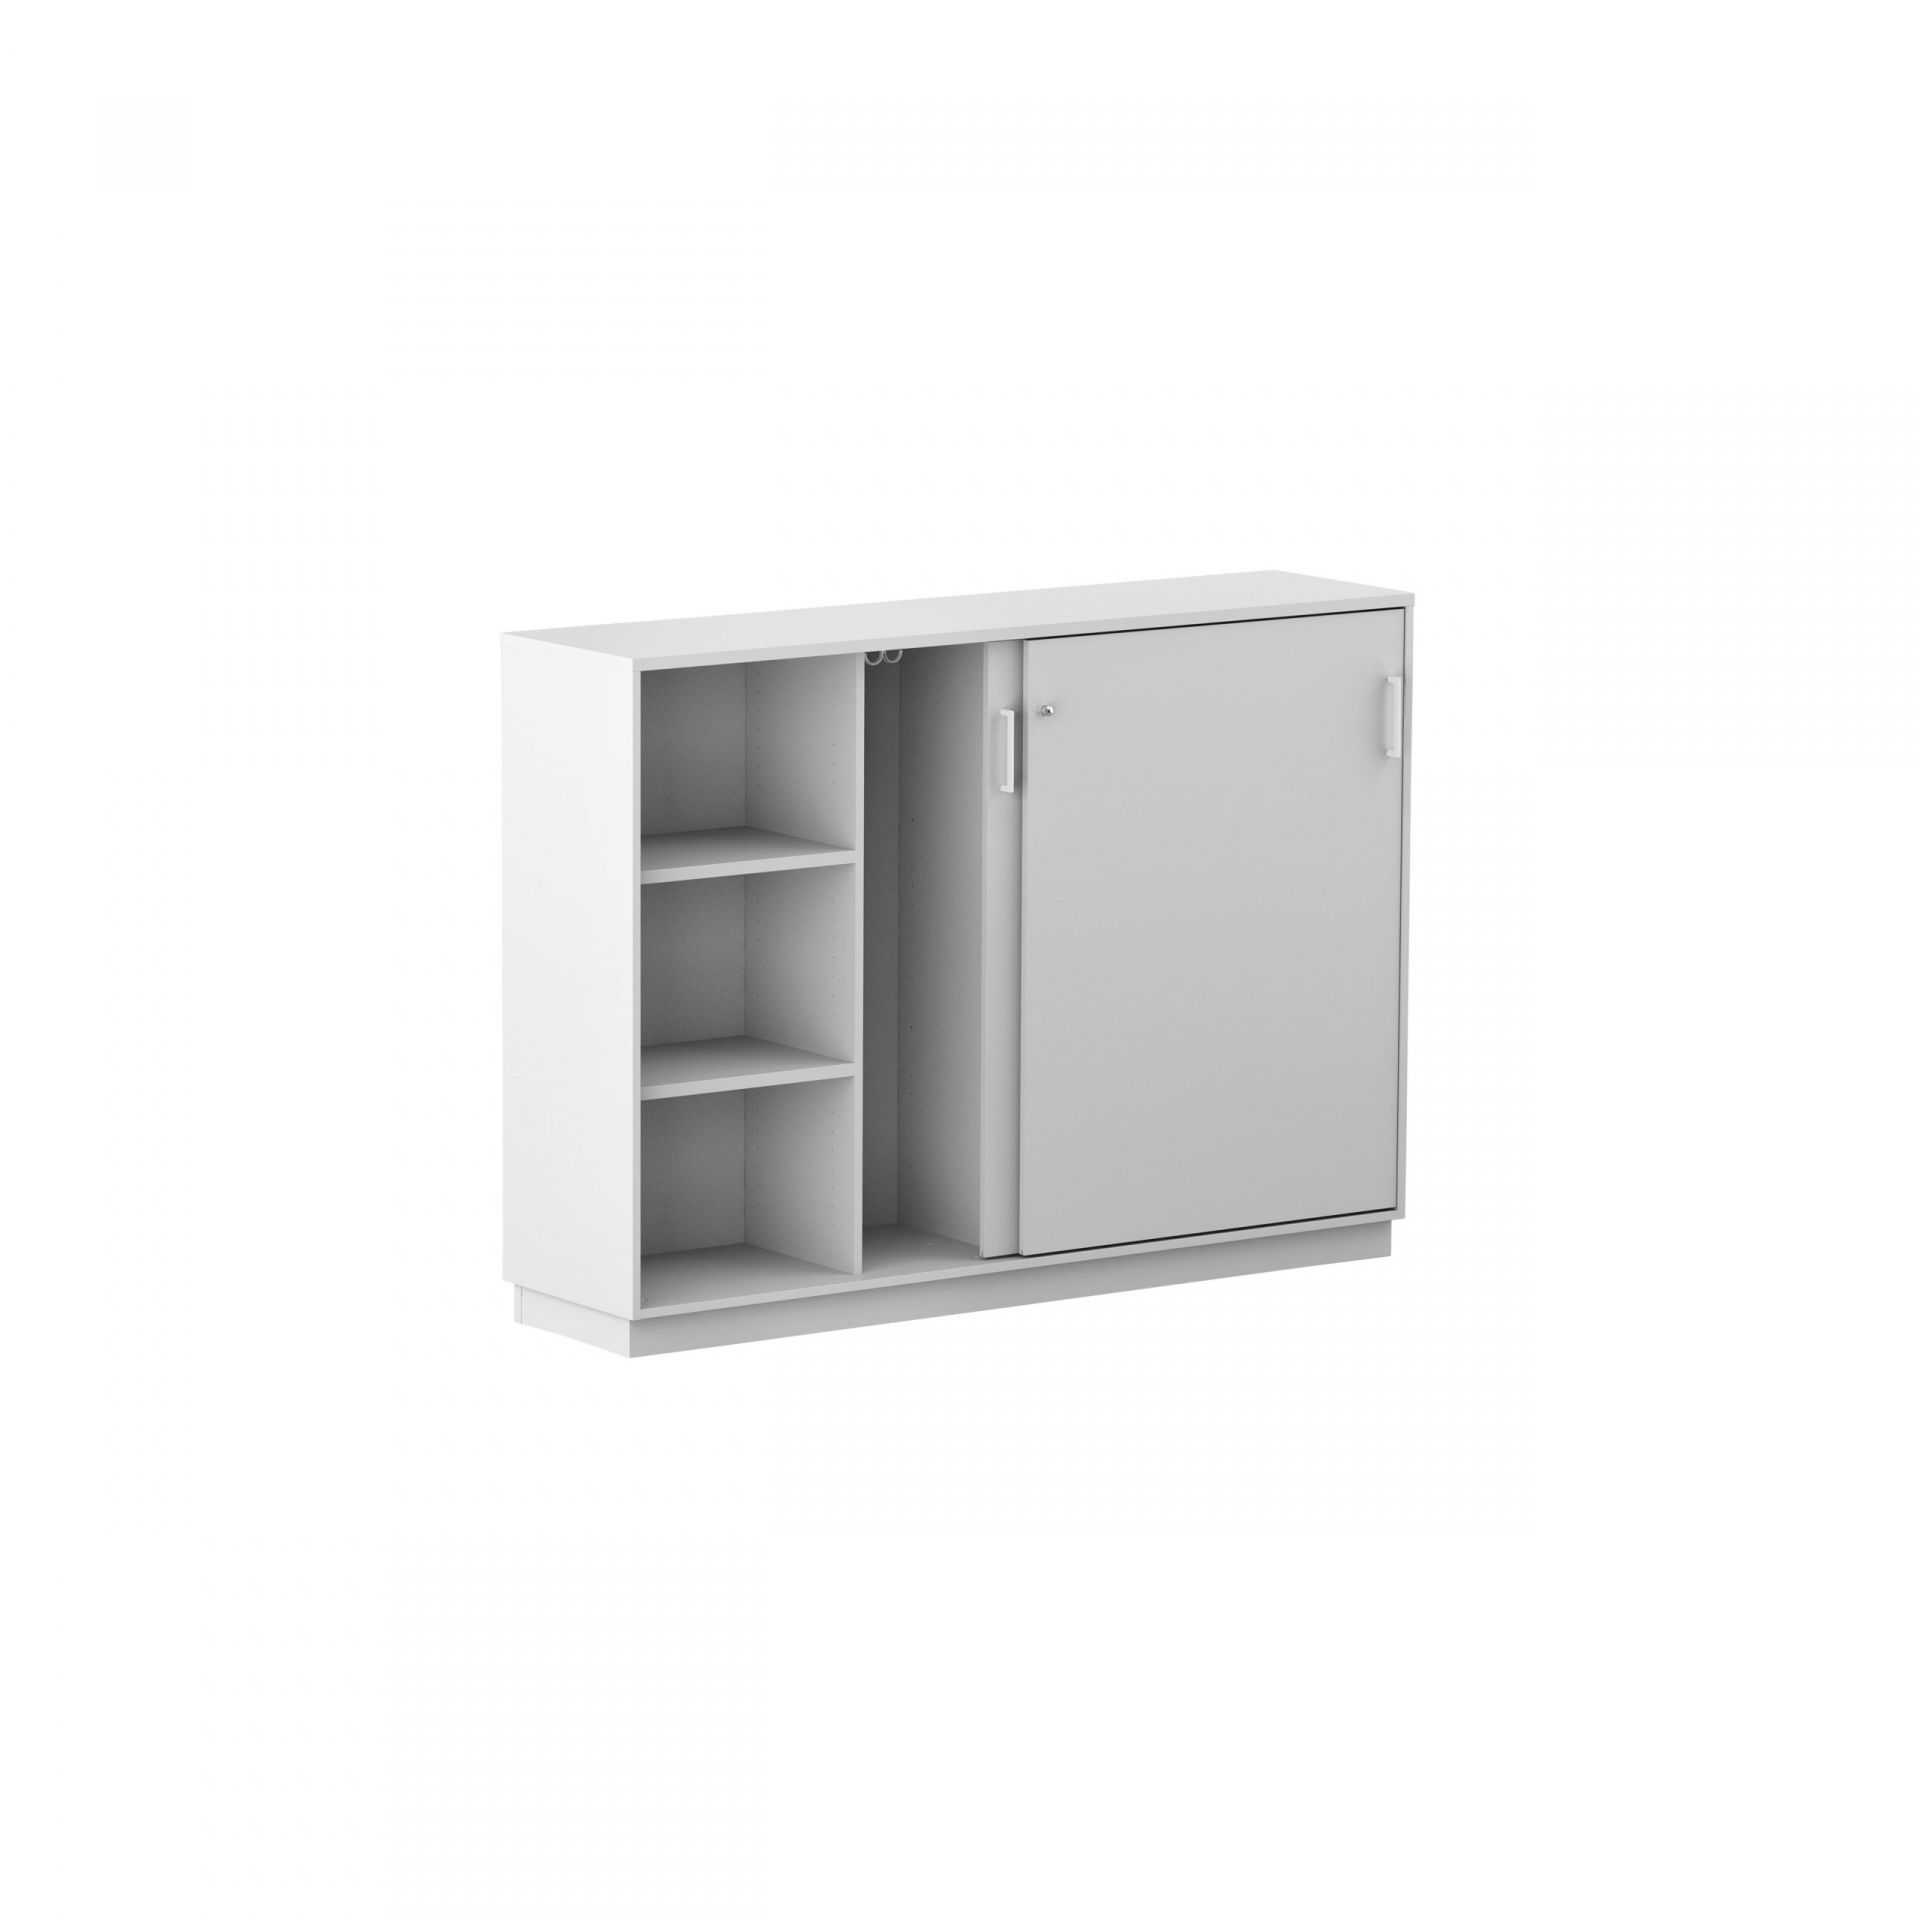 Hold Sliding-door cabinet product image 2